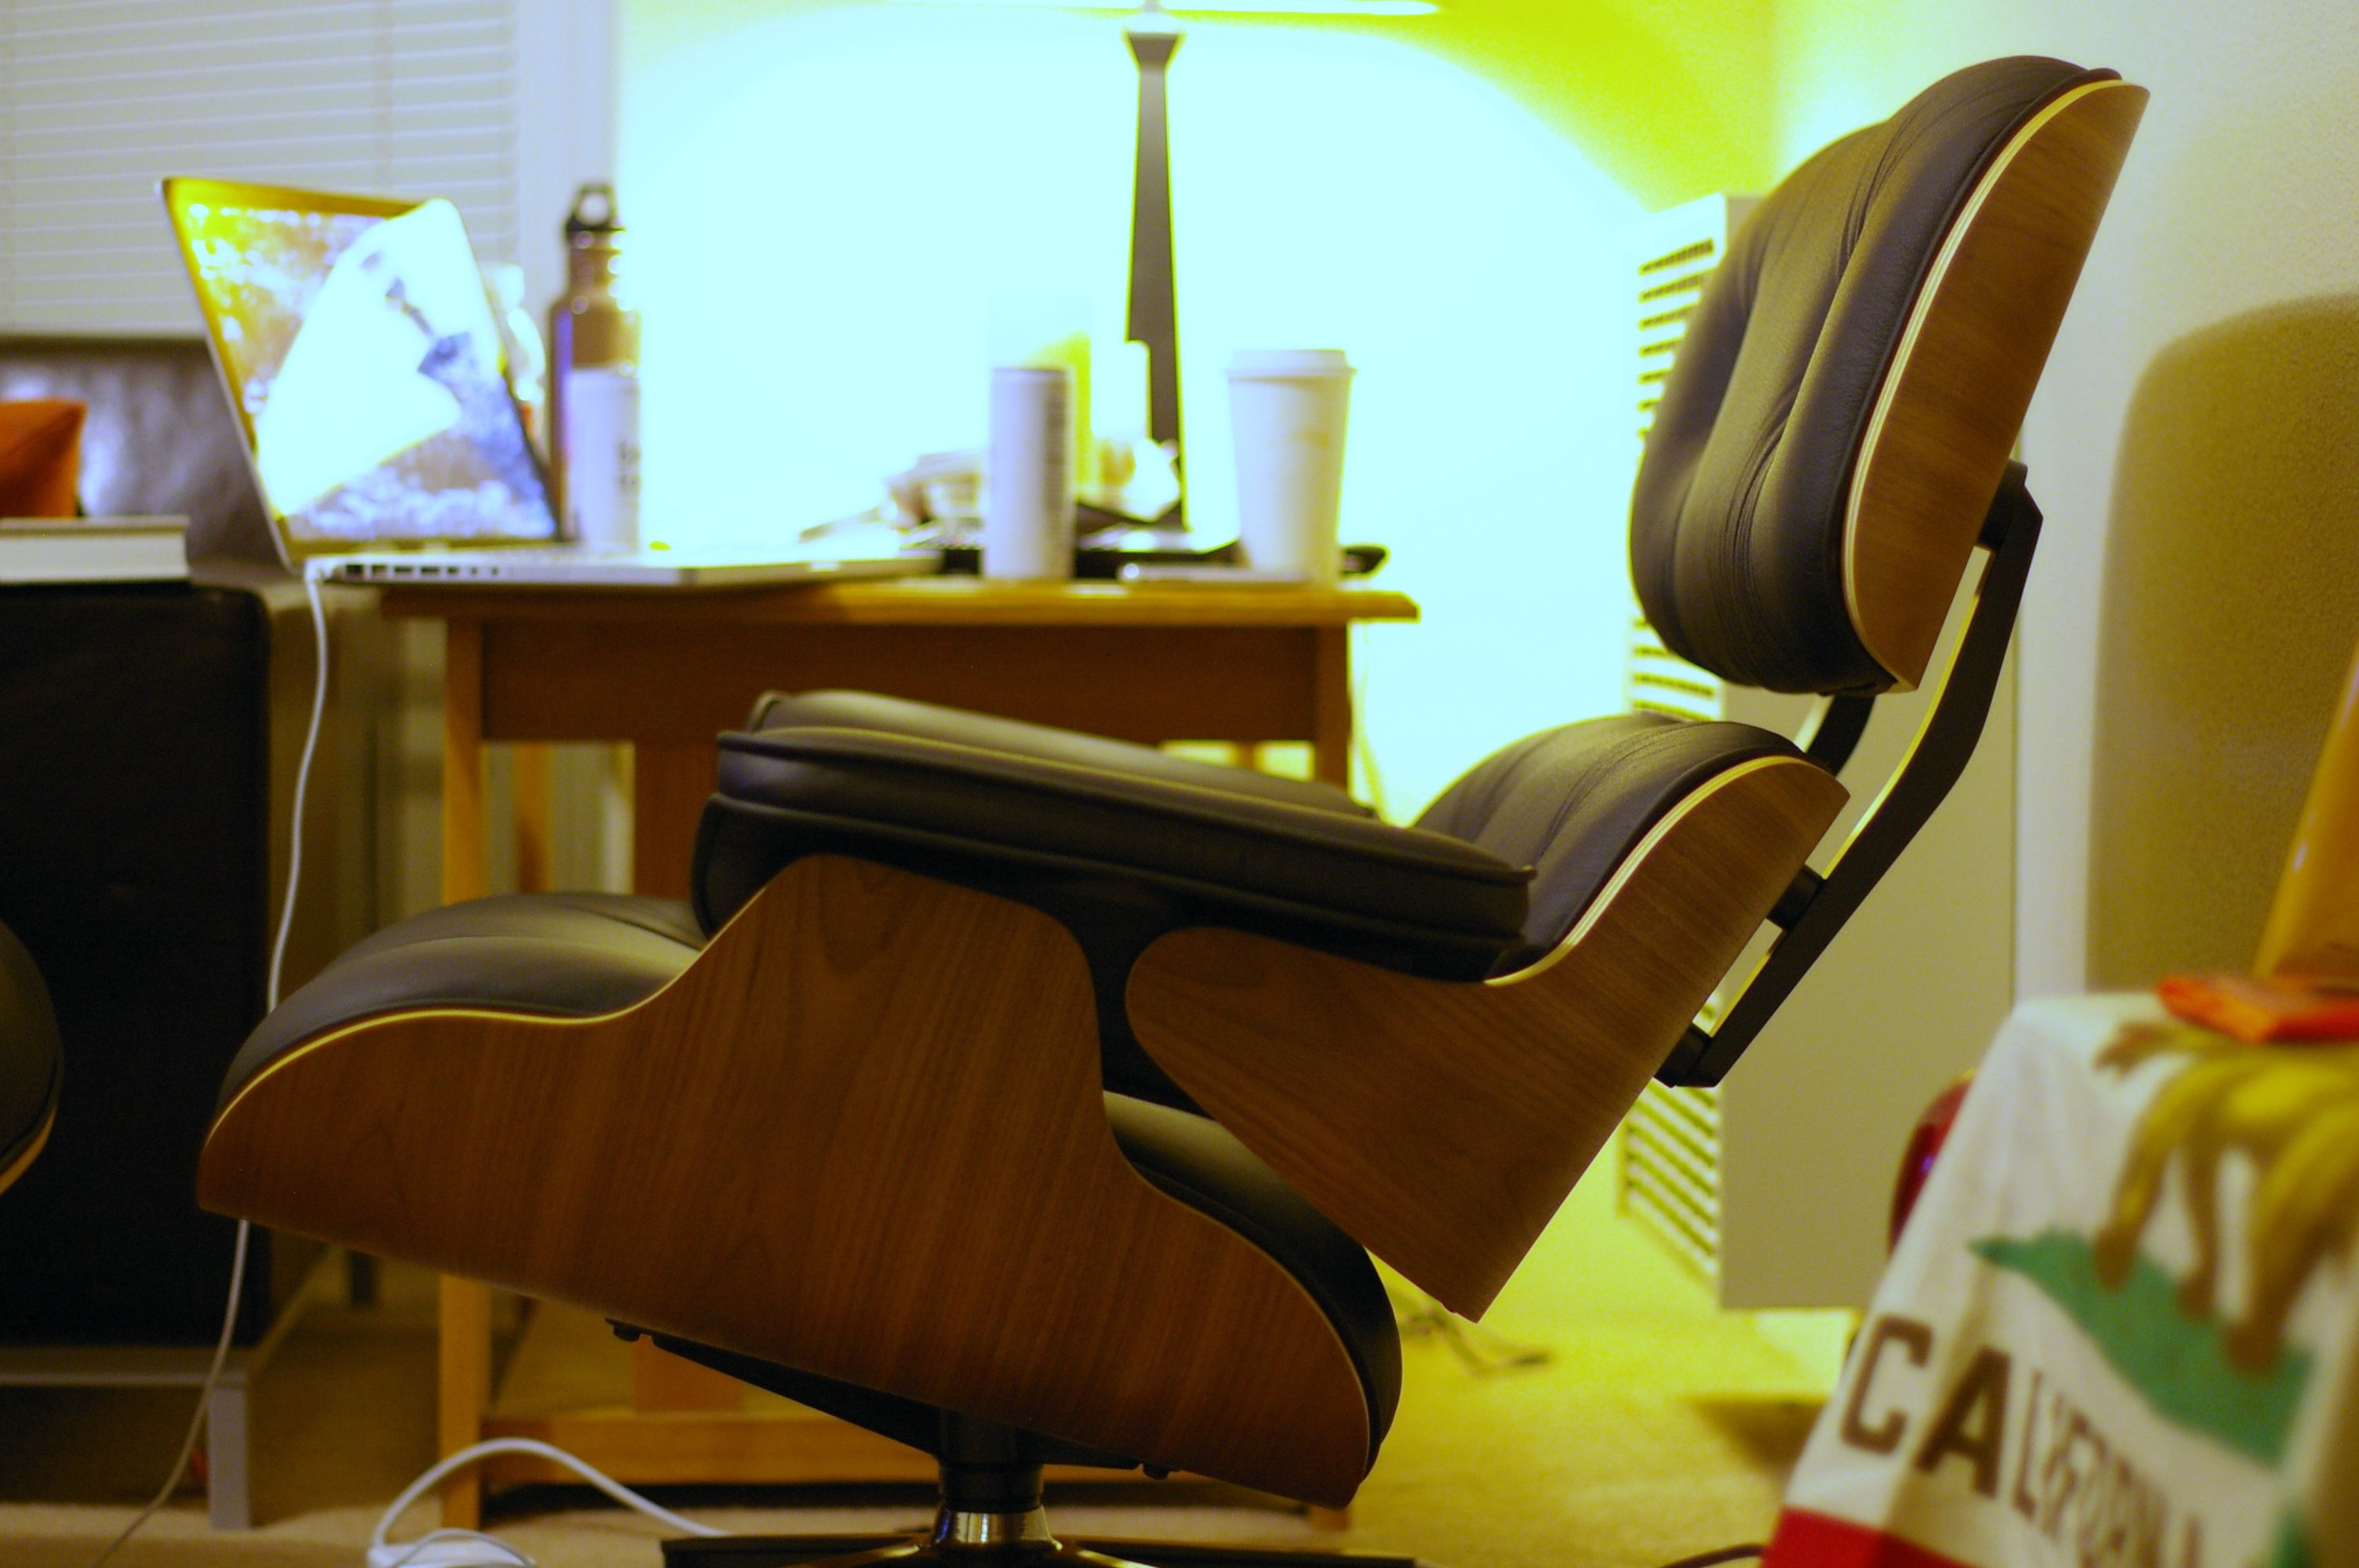 It may now be illegal to make this chair at home without a licence.